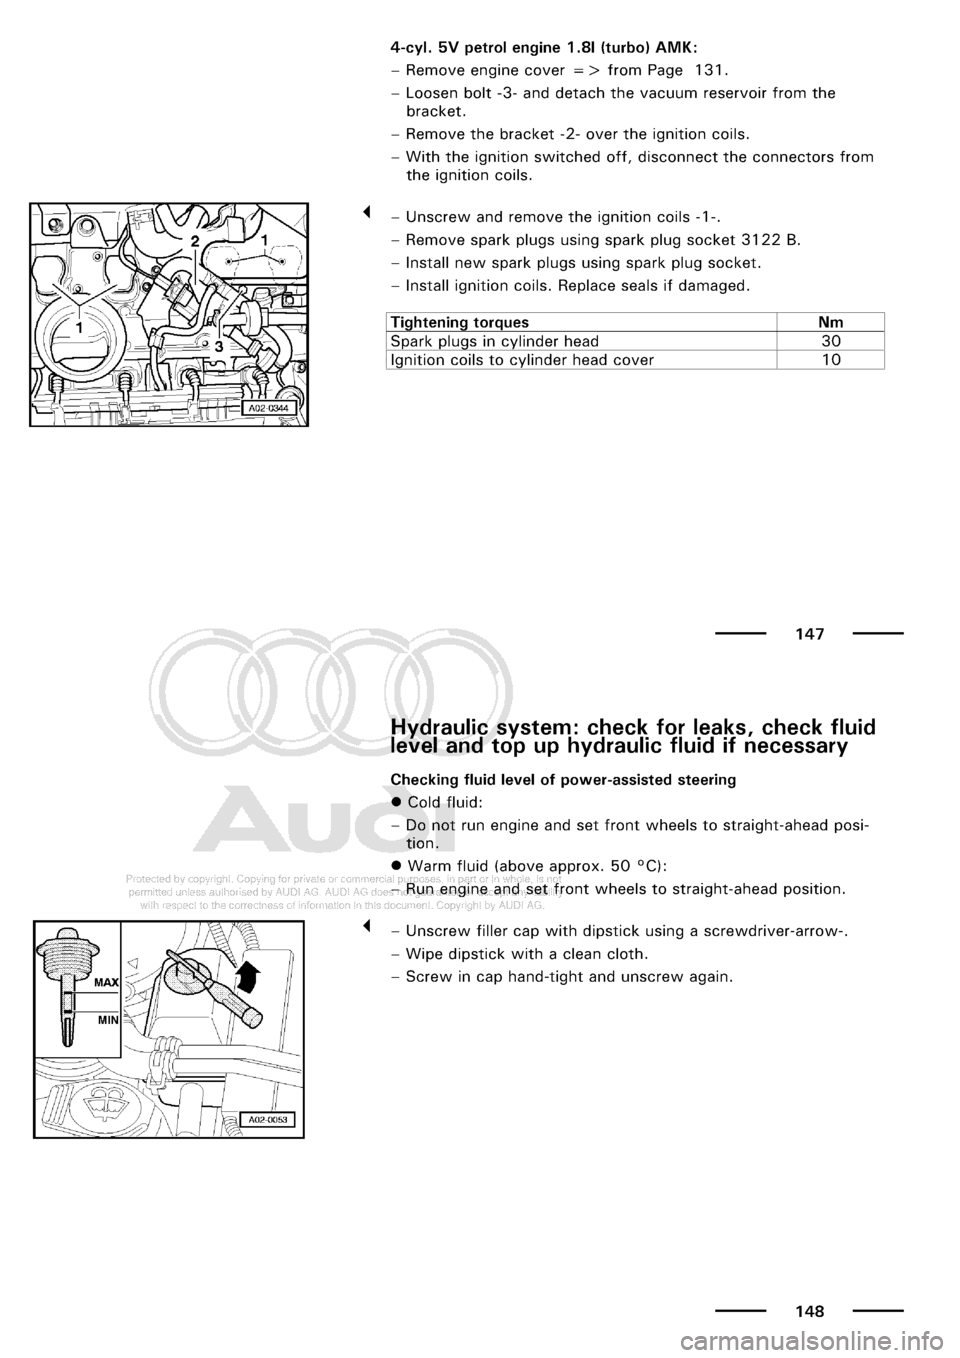 AUDI A3 1998 8L / 1.G Maintenance Manual PDF